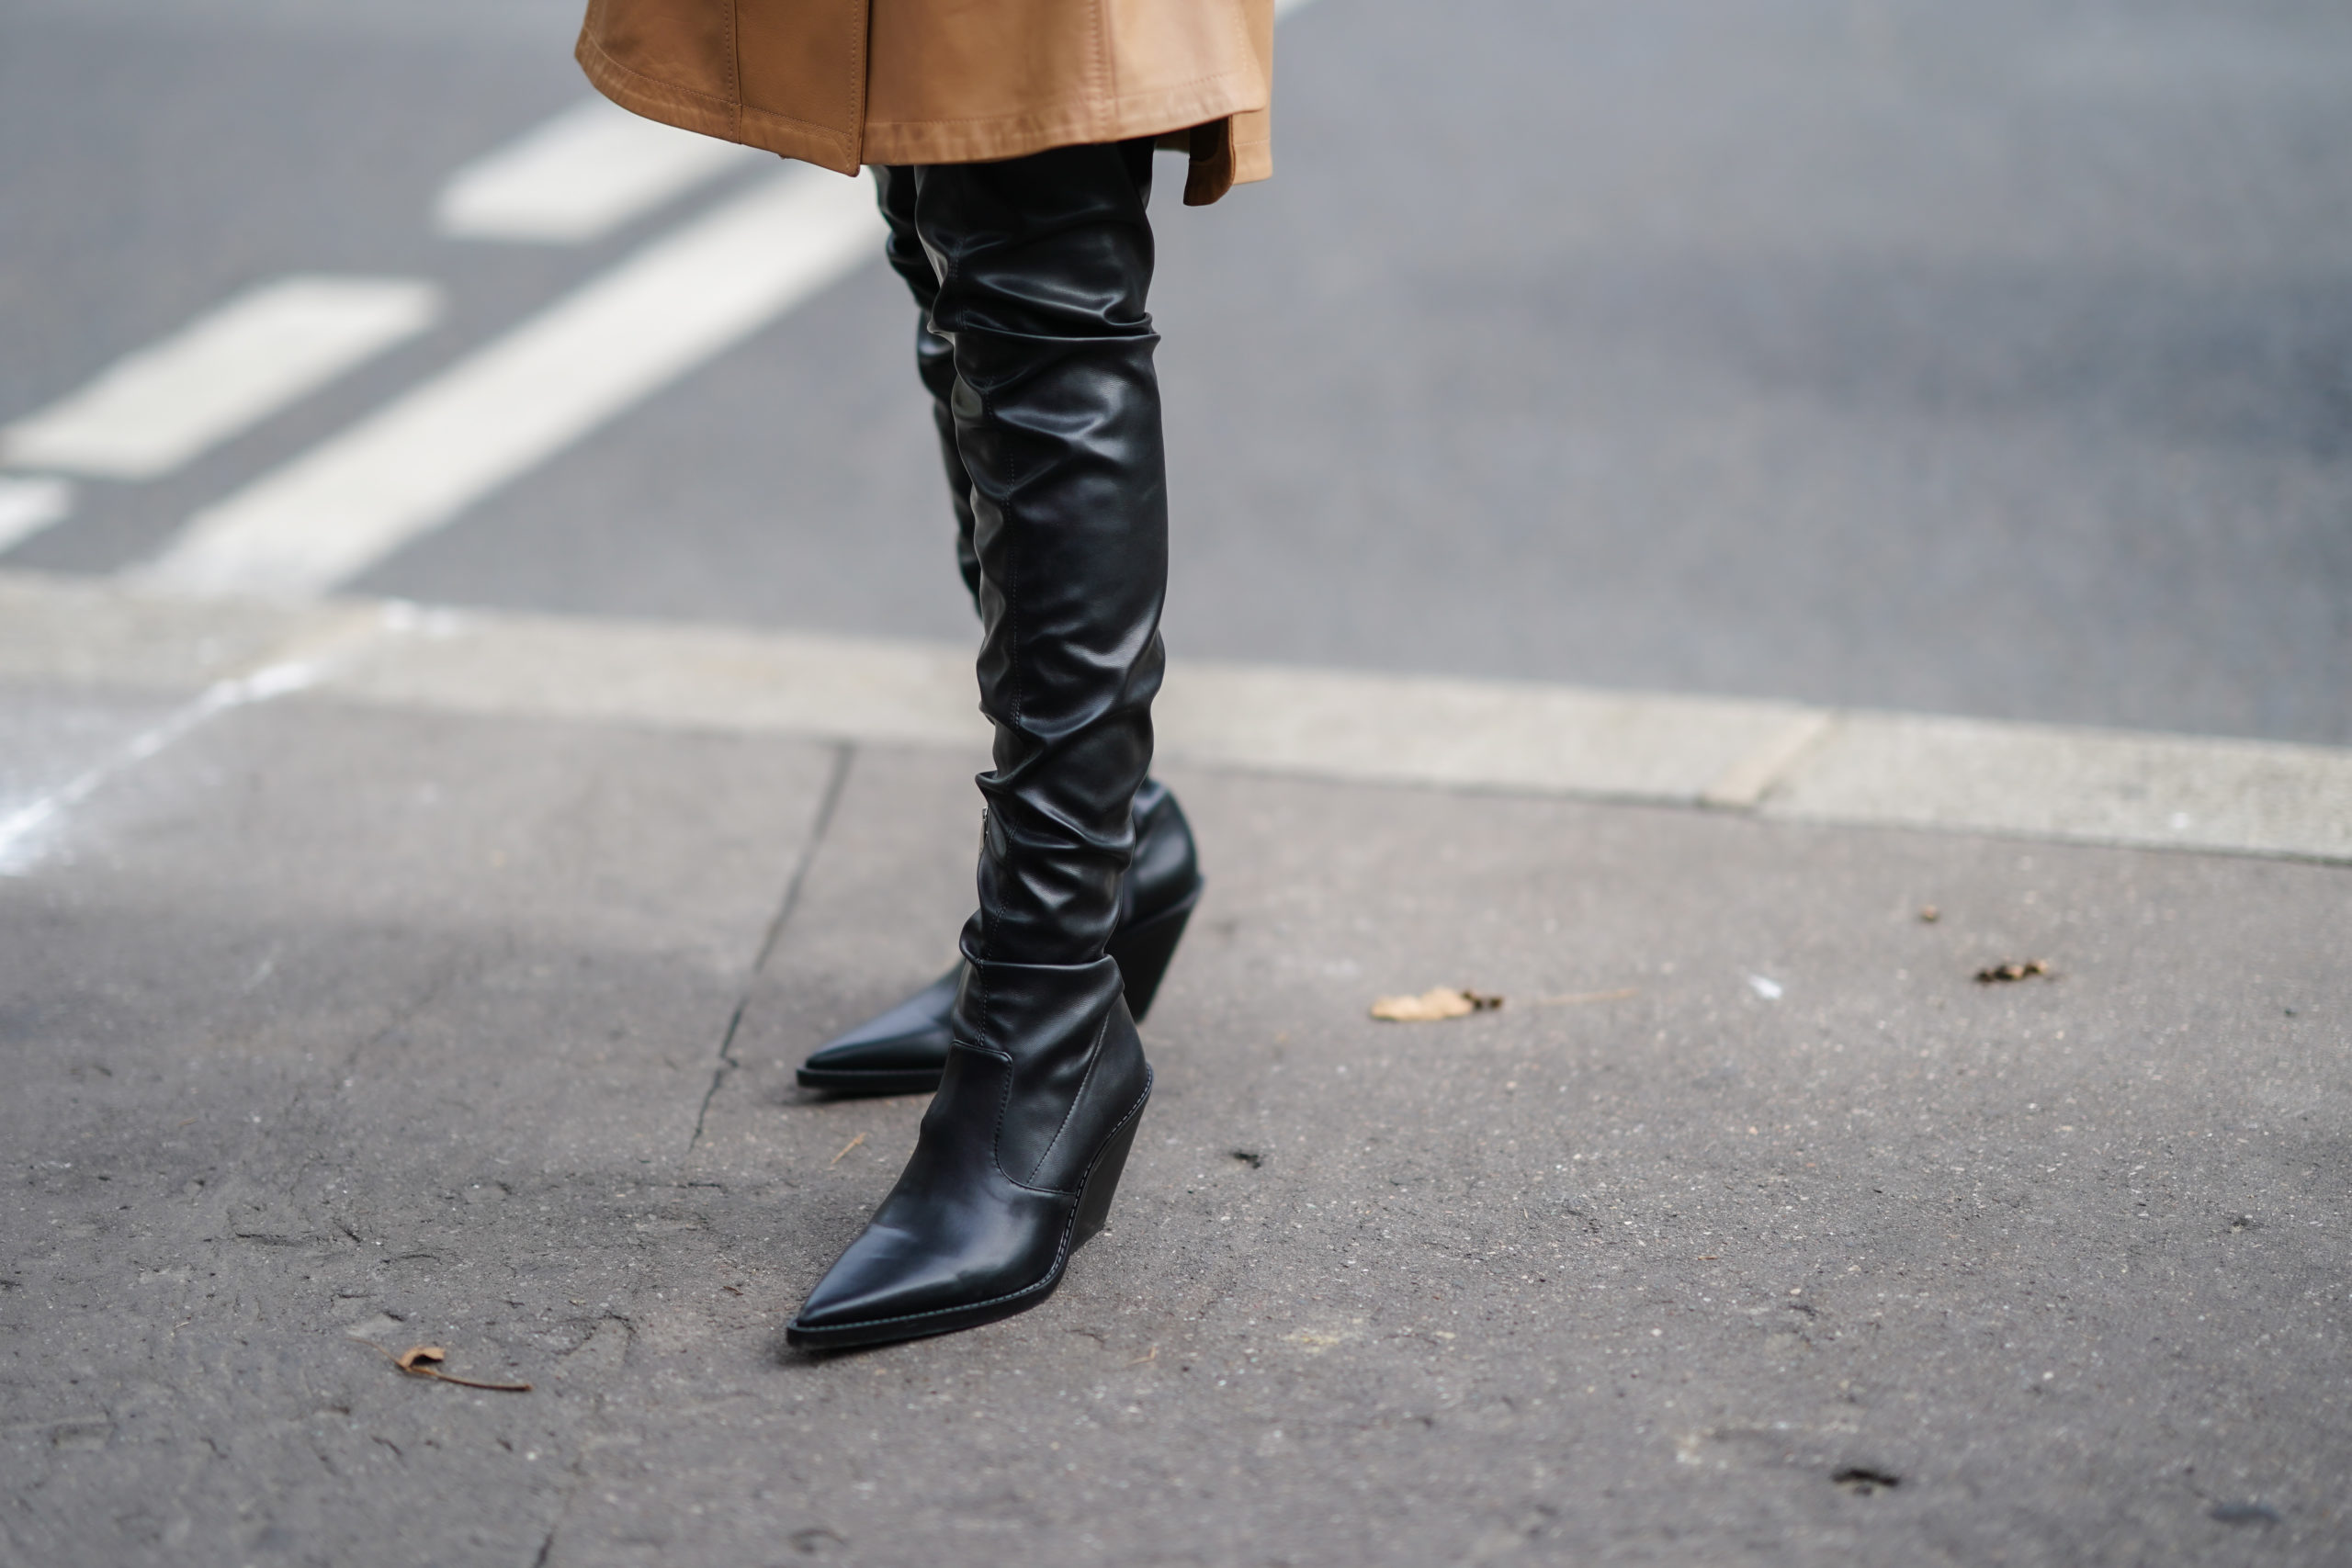 Best Fall Winter 2020 shoes and boots trends: white boots, cowbow heel boots, combat boots, snake print shoes, croc print boots. Cowboy heels boots